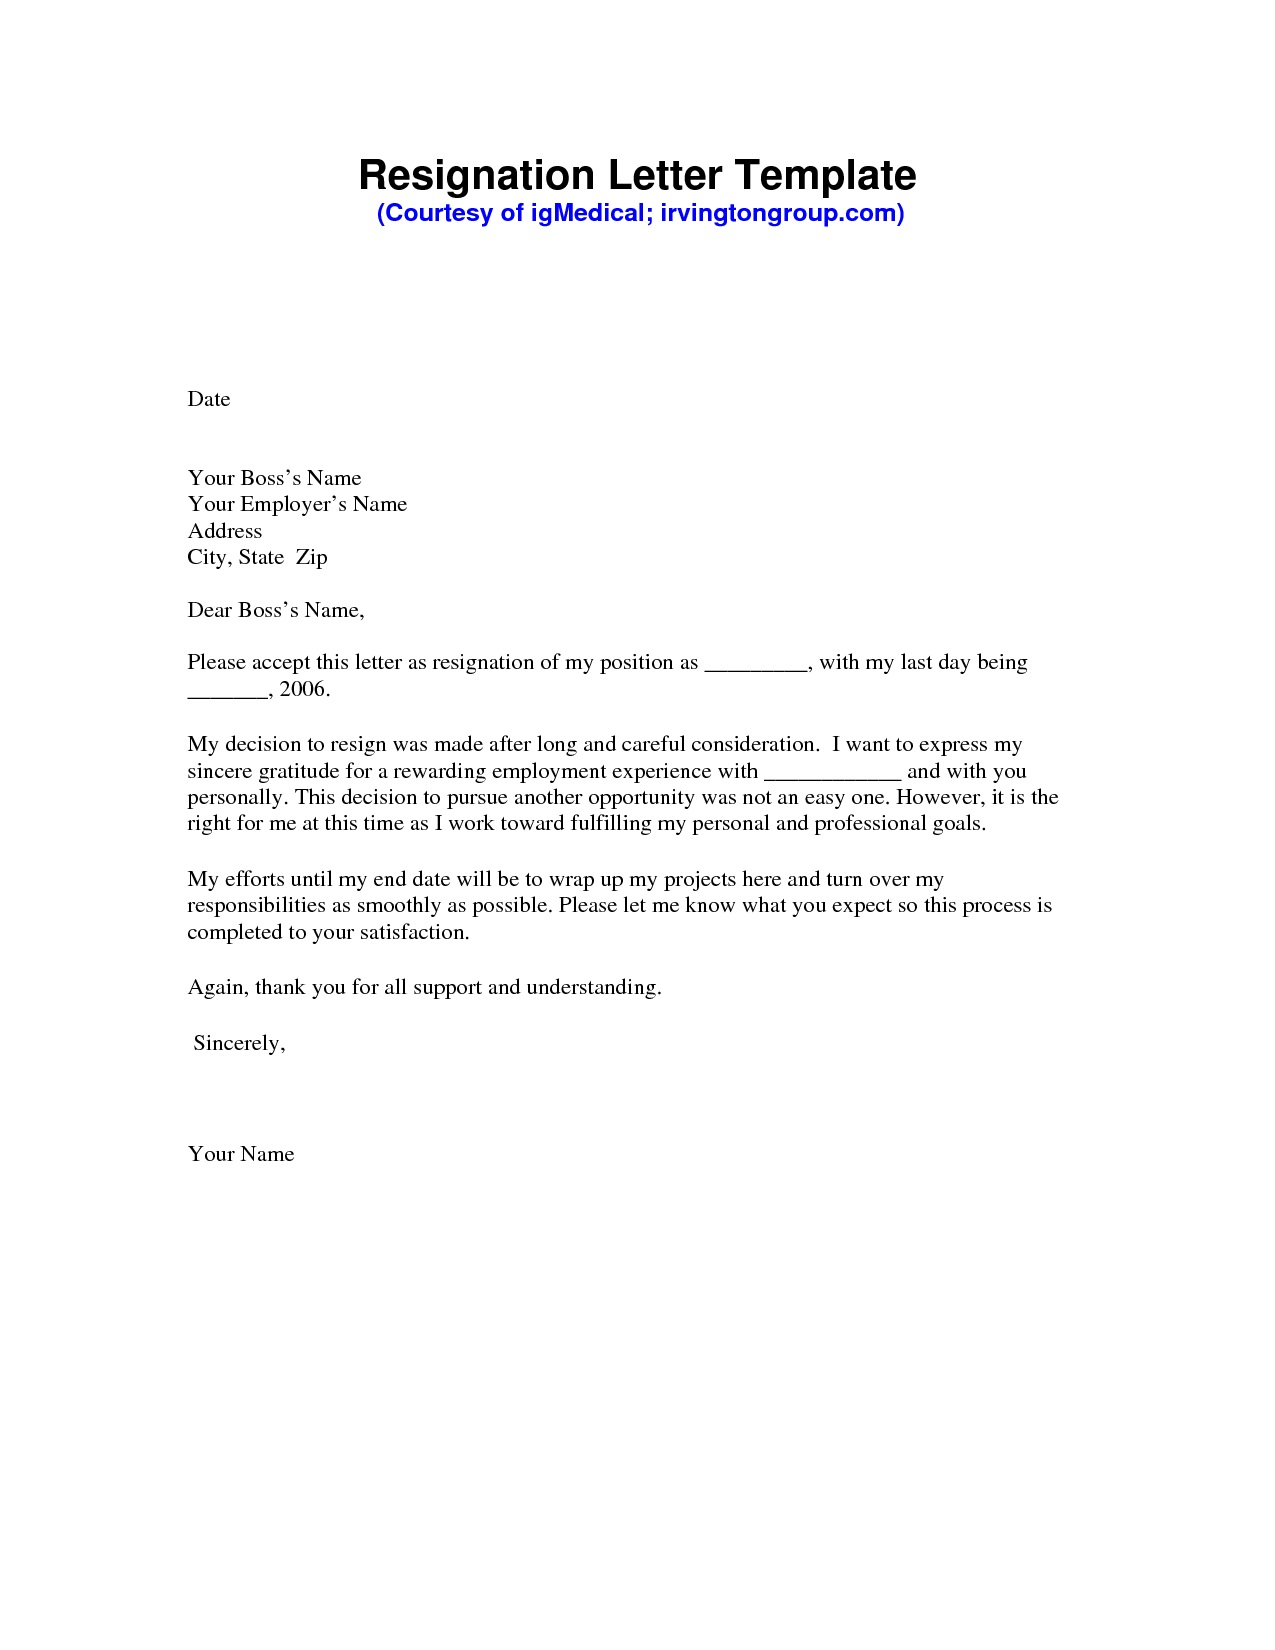 000 Remarkable Professional Resignation Letter Template Image  Best Format Pdf How To Write AFull